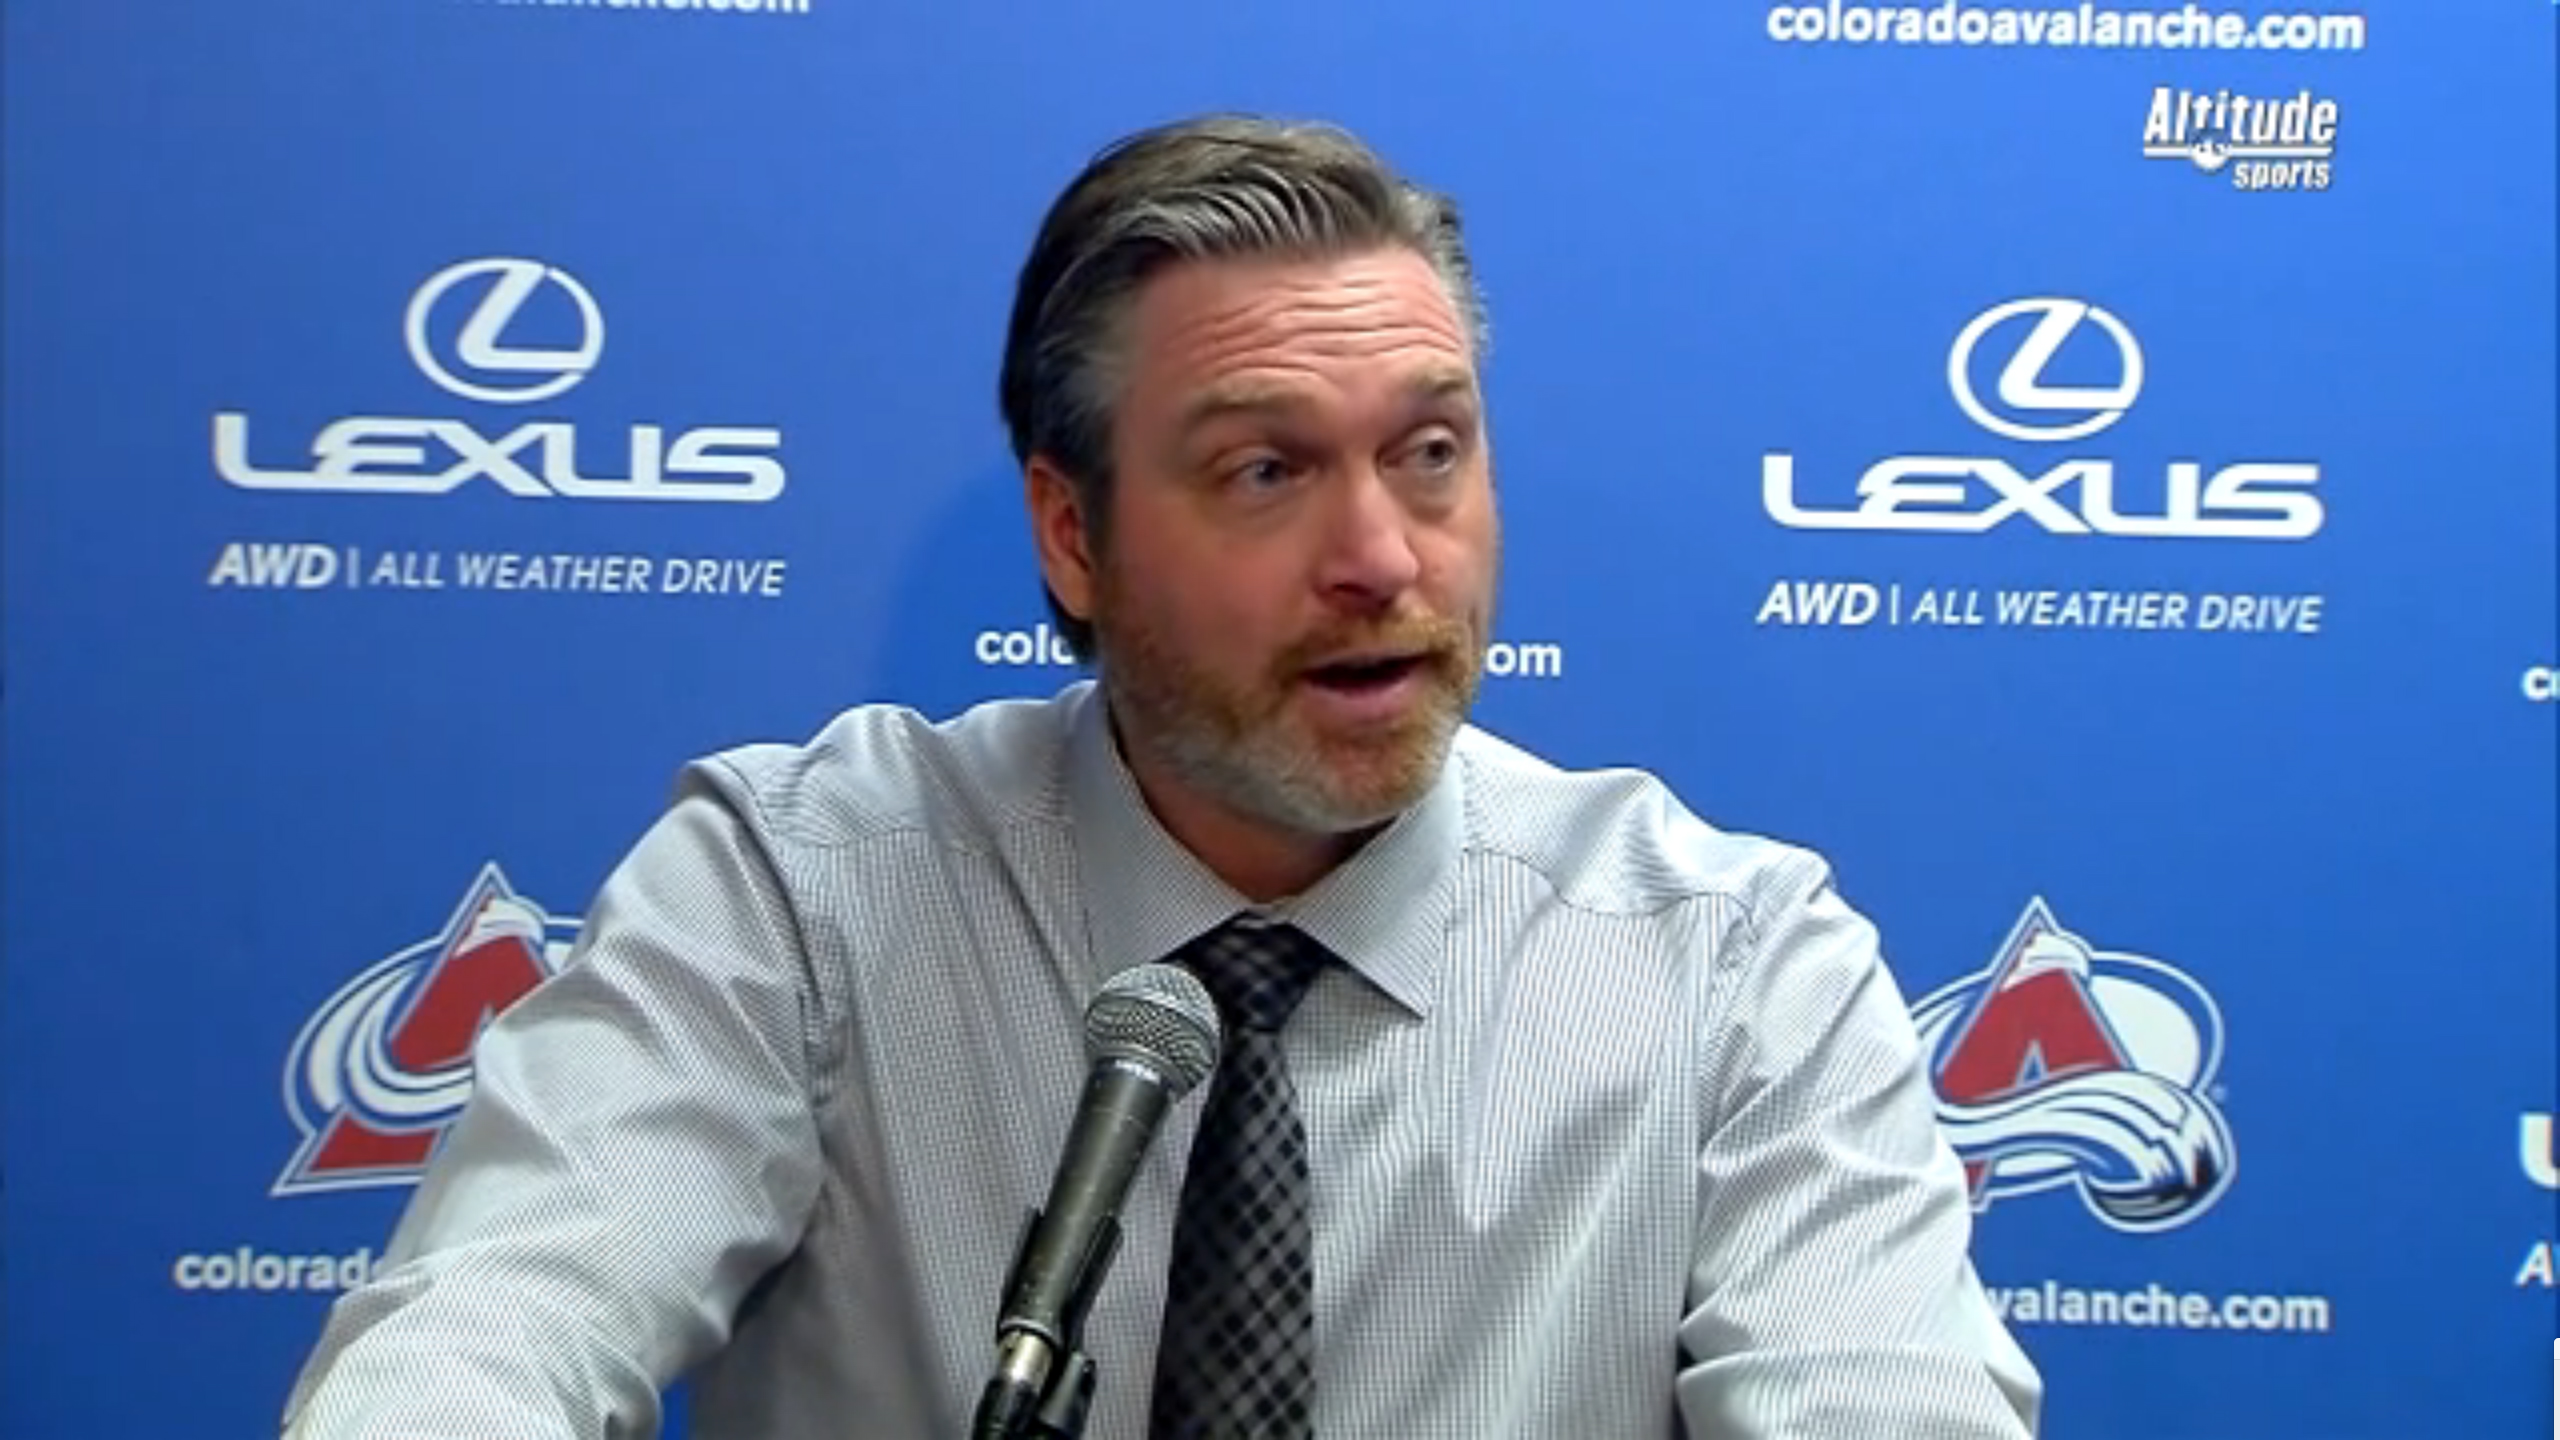 Patrick-Roy-Post-Game-122115.jpg